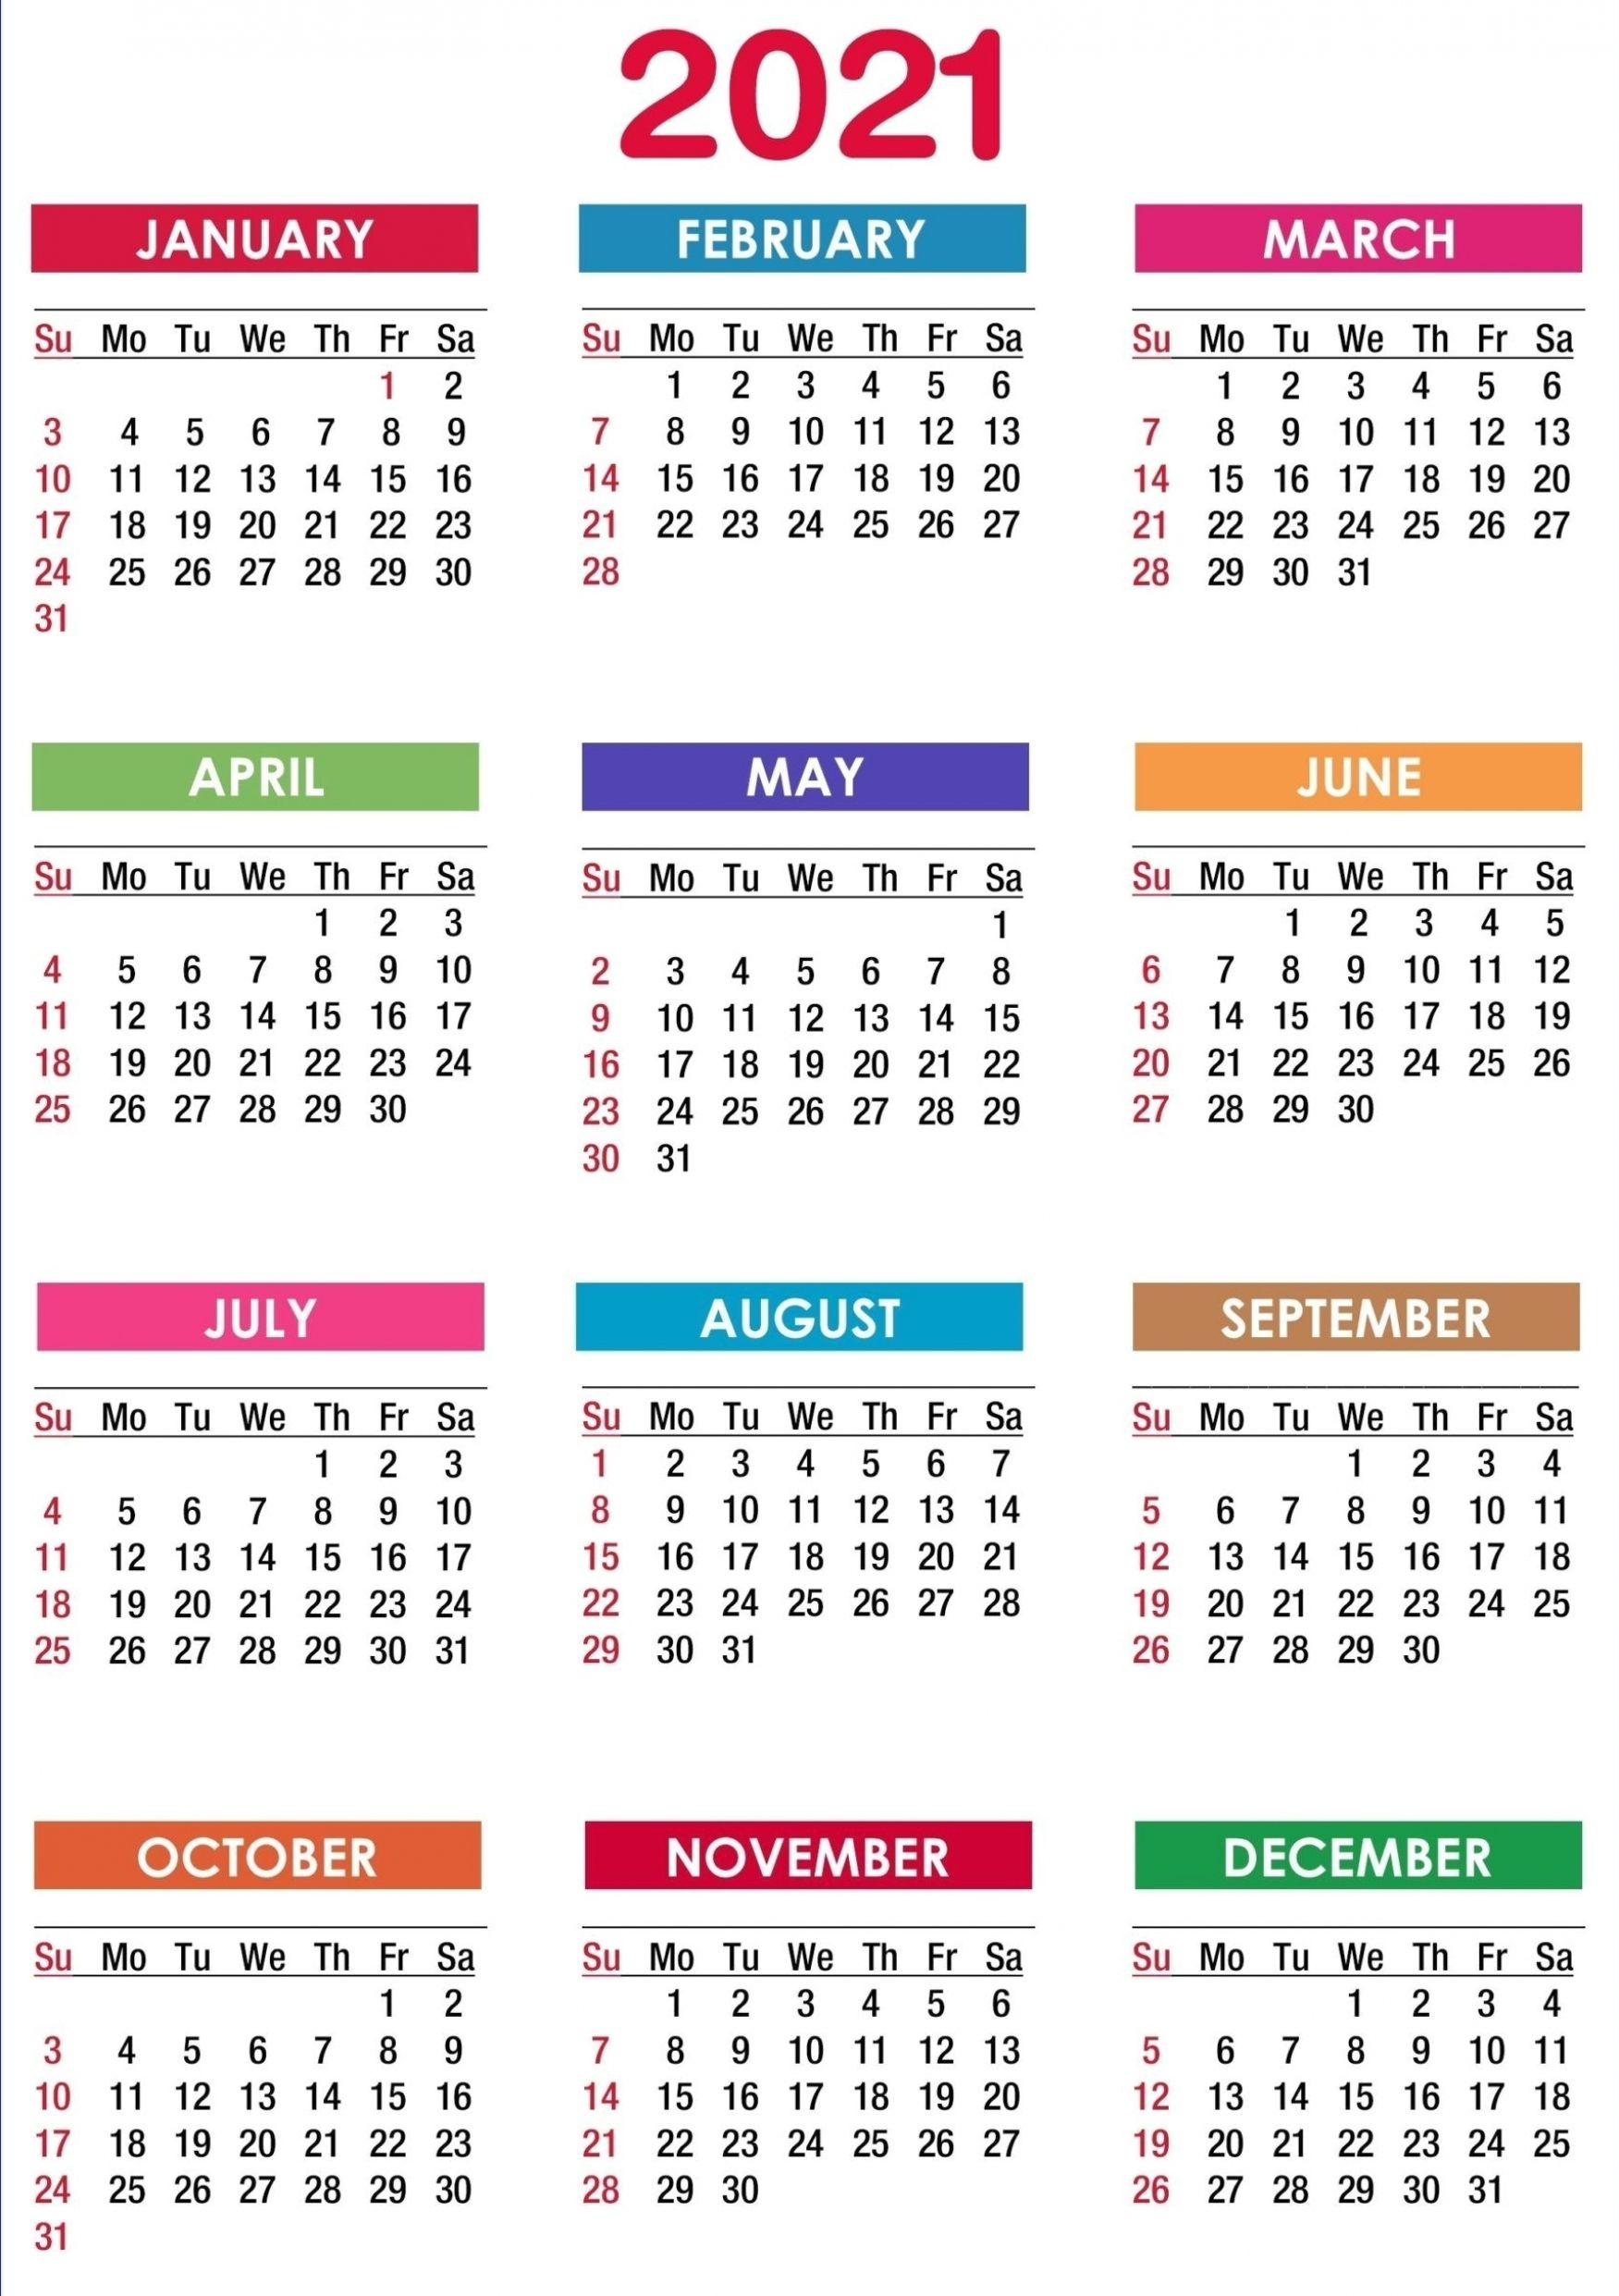 2021 Calendar Printable | 12 Months All In One | Printable